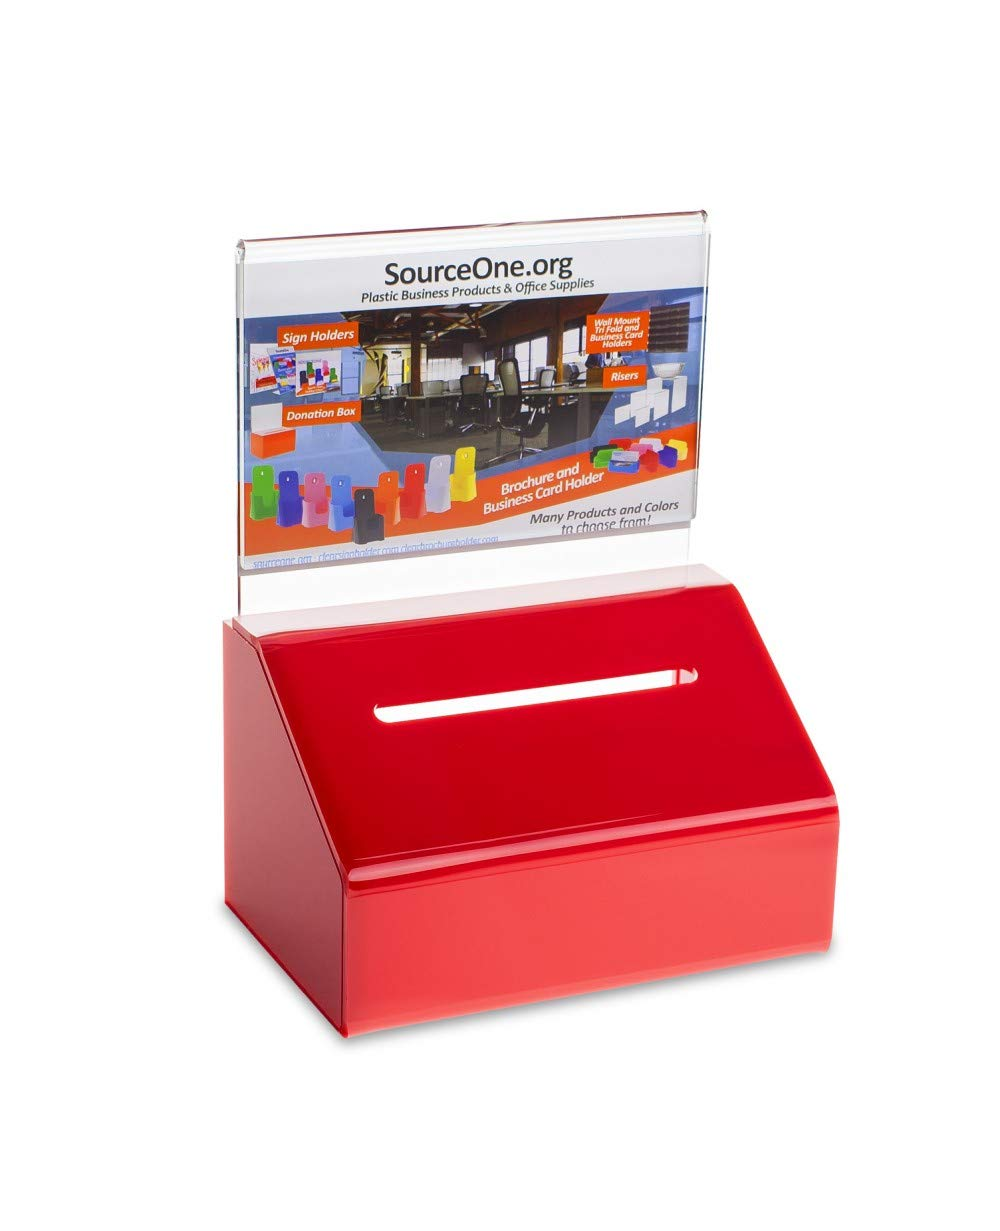 Source One Heavy Duty Donation/Ballot Box with Lock and Sign Holder (6 Pack, Red) by SOURCEONE.ORG